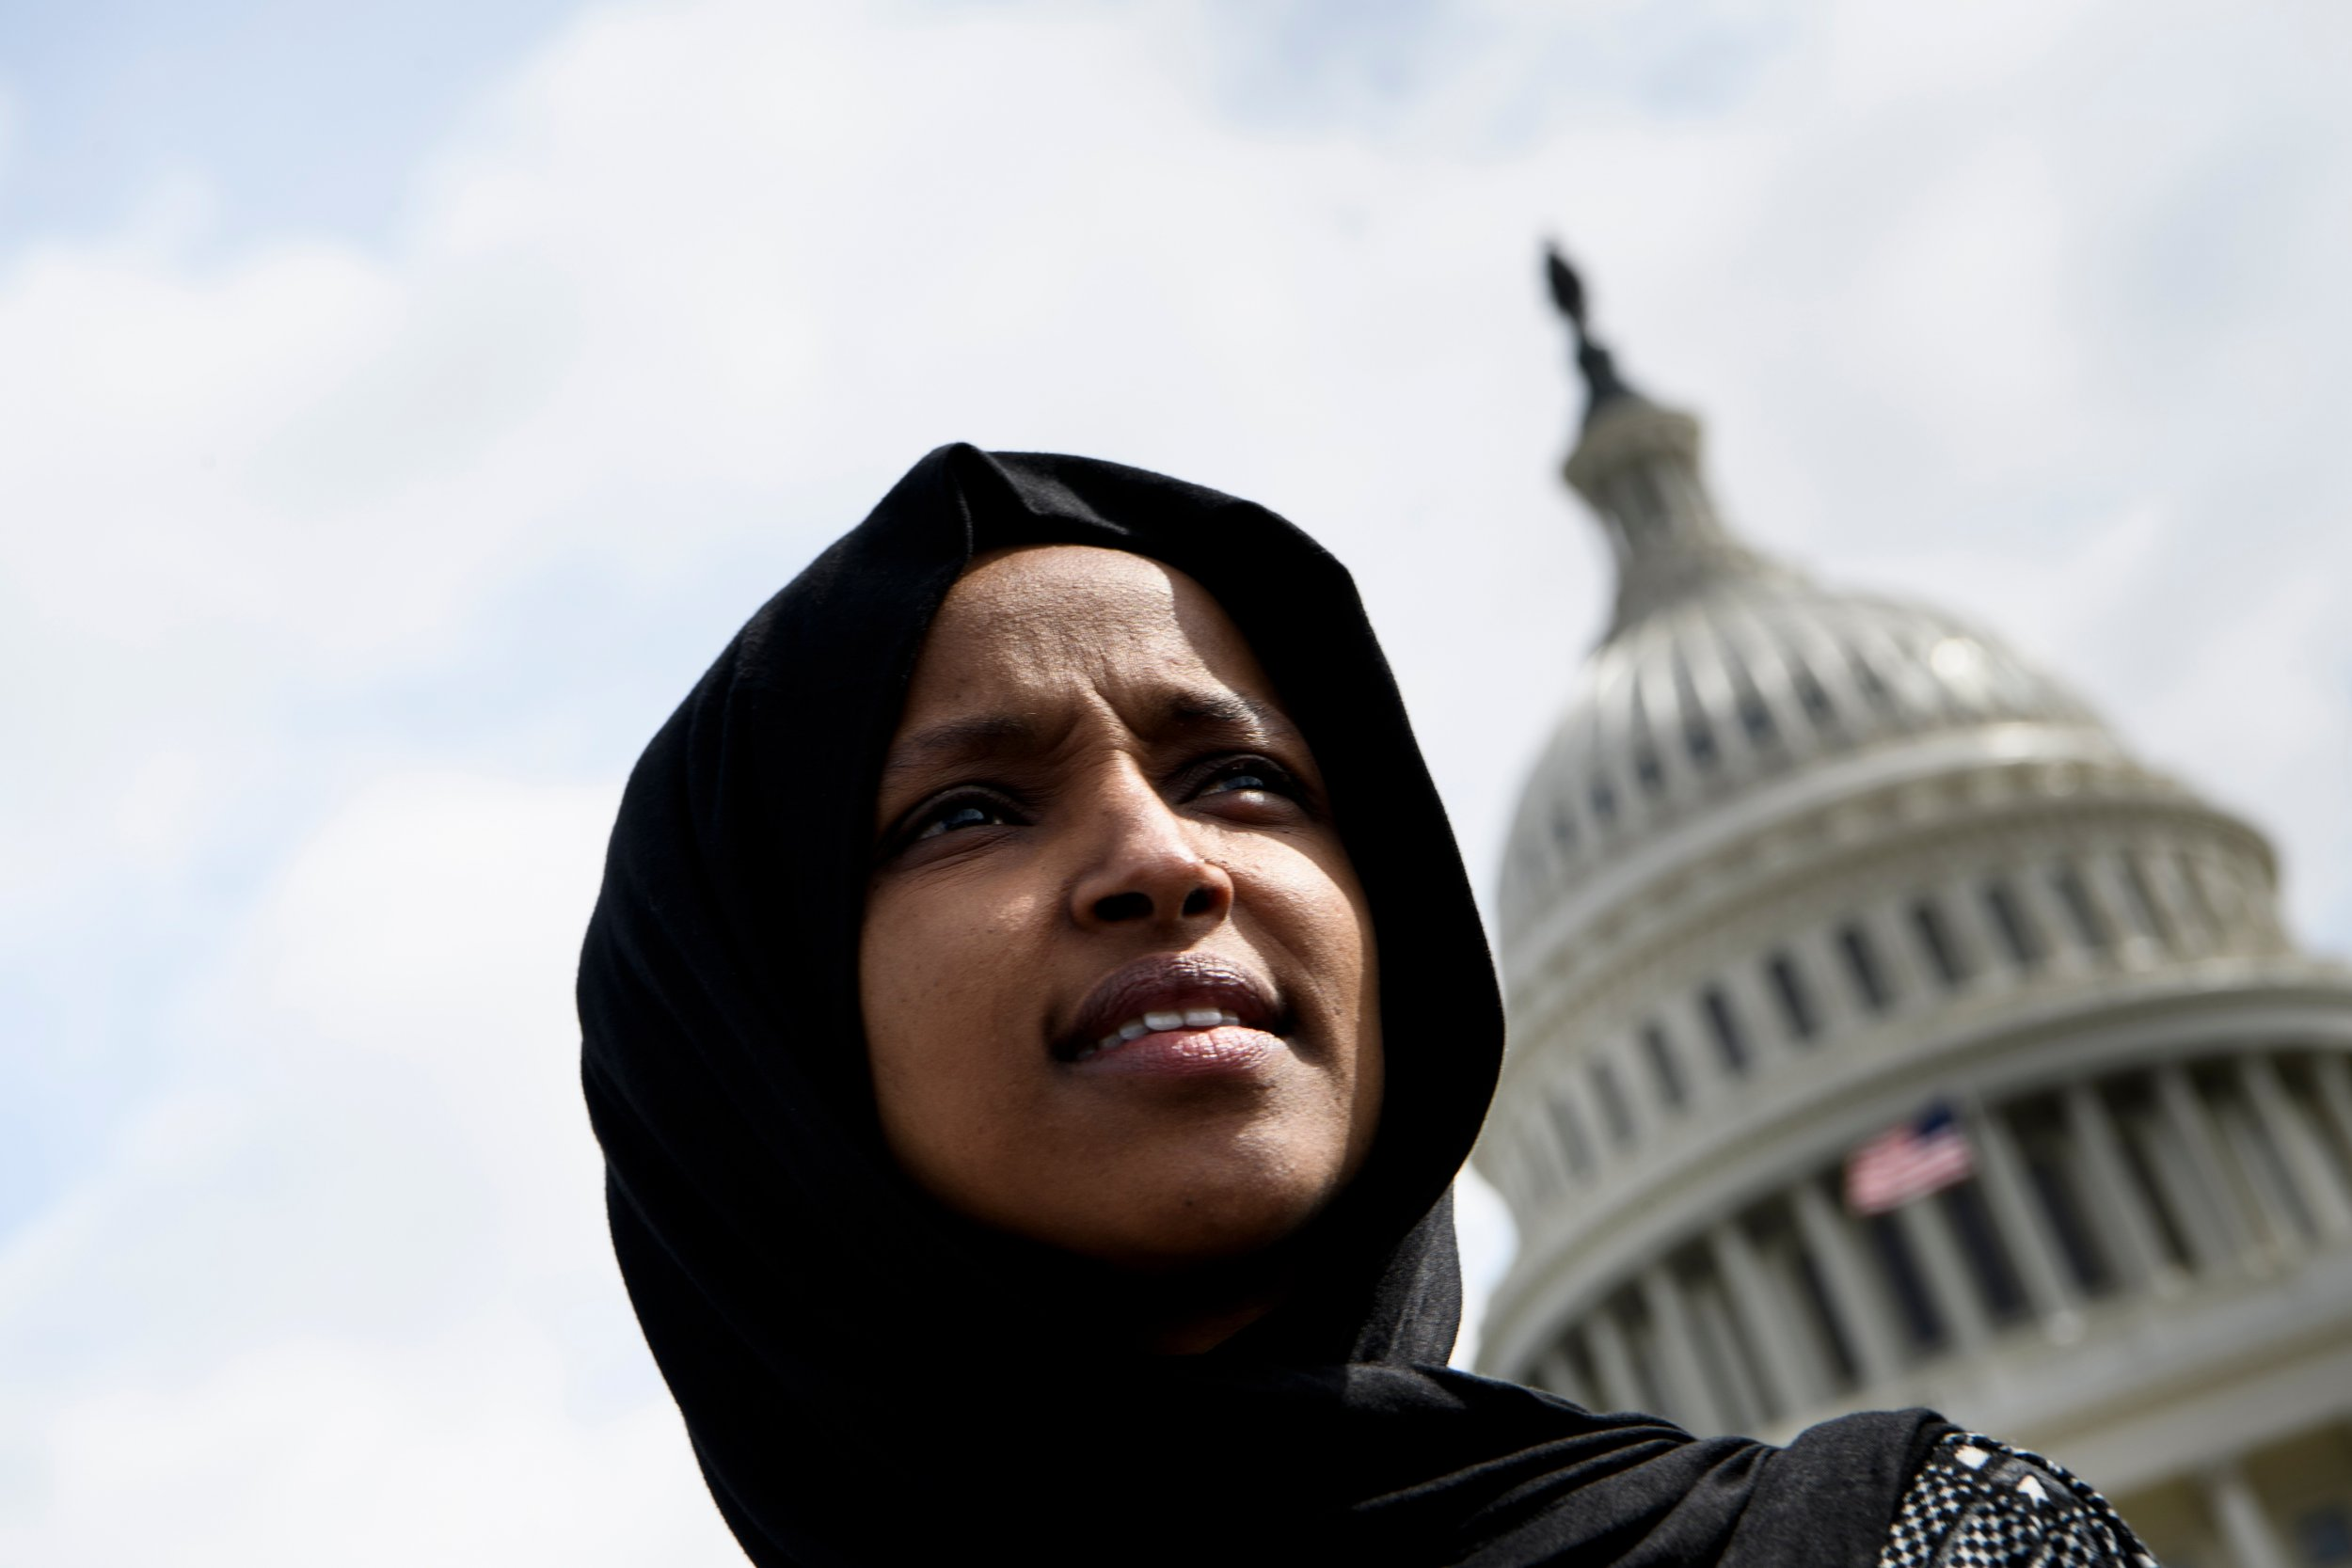 Ilhan Omar Fox News death threats